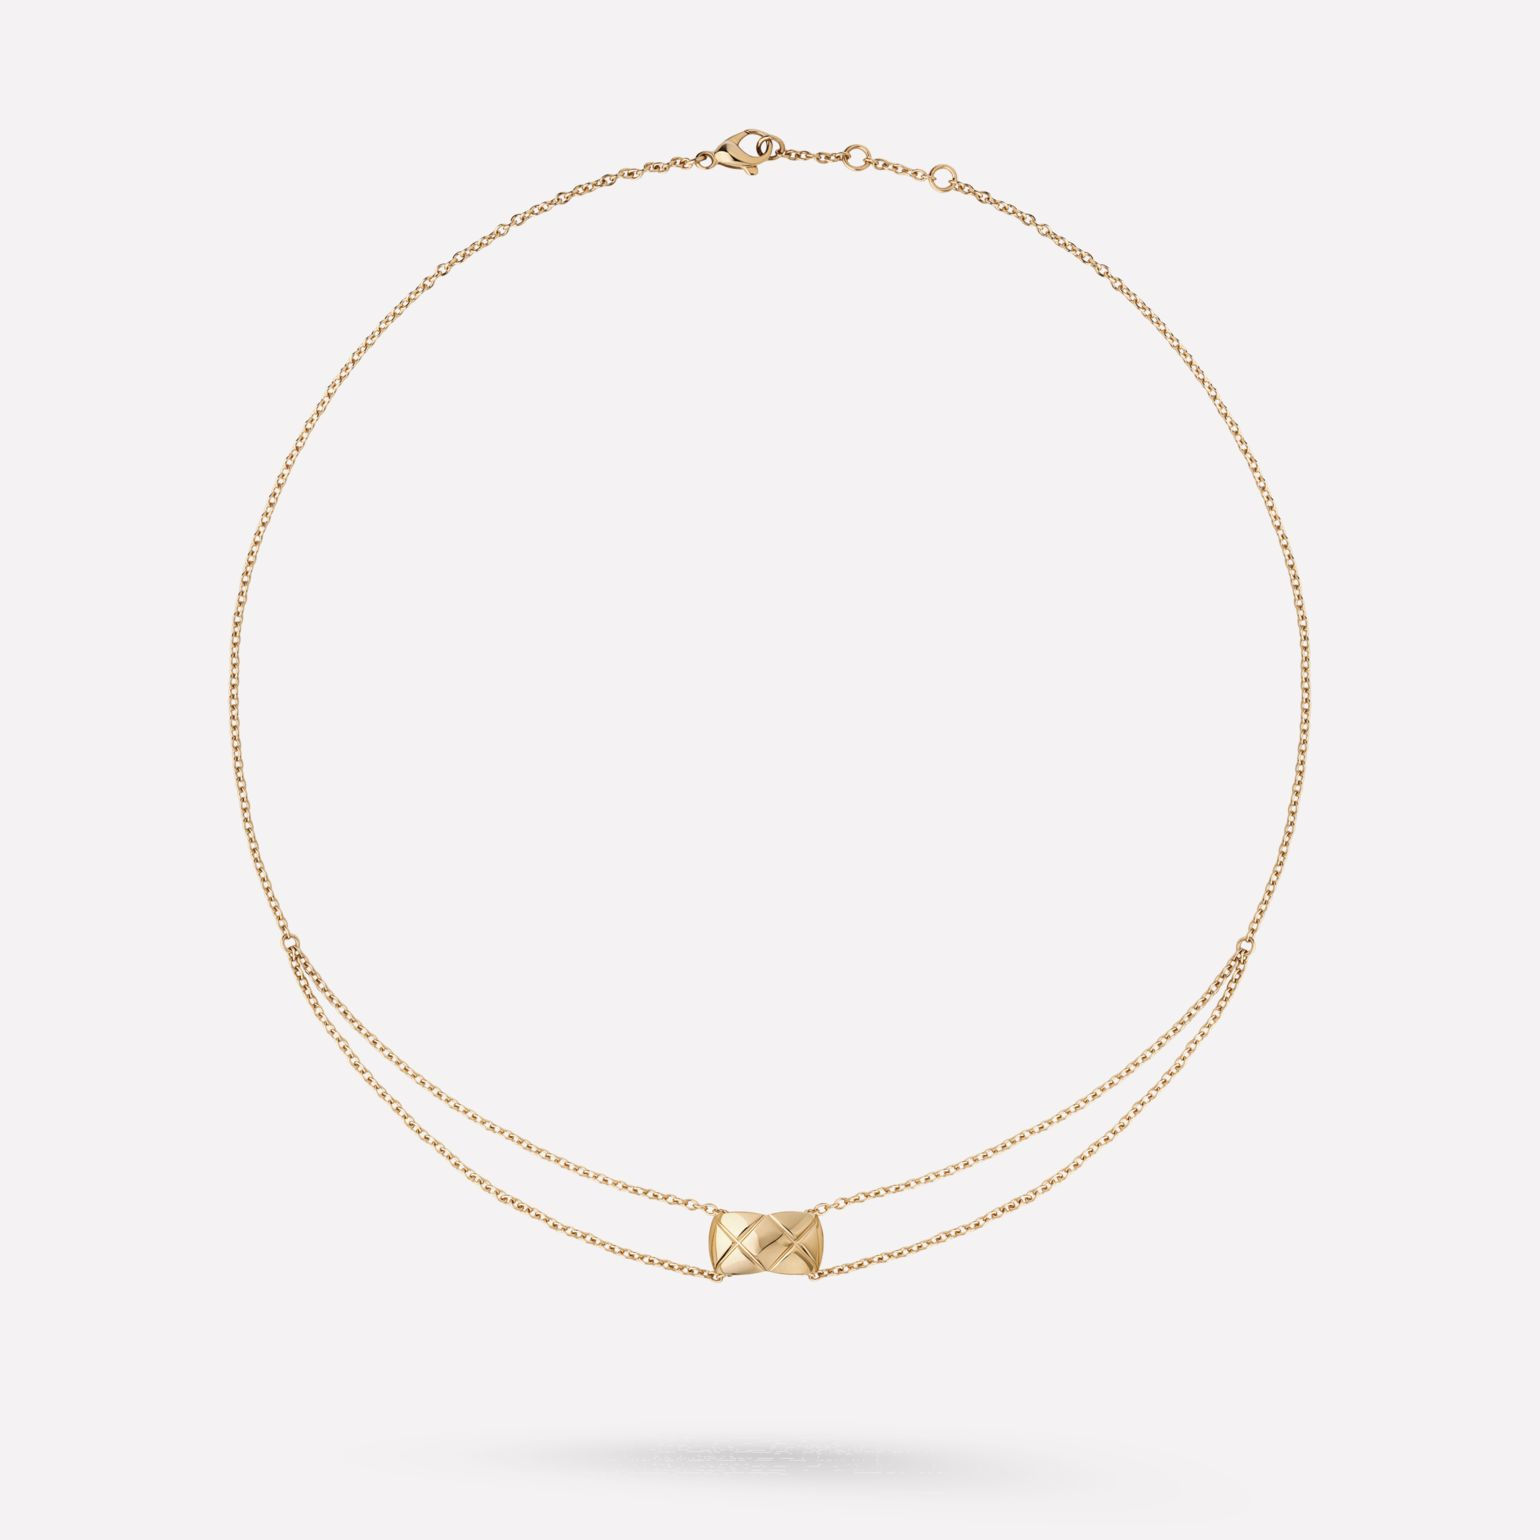 Coco Crush necklace Quilted motif, 18K BEIGE GOLD